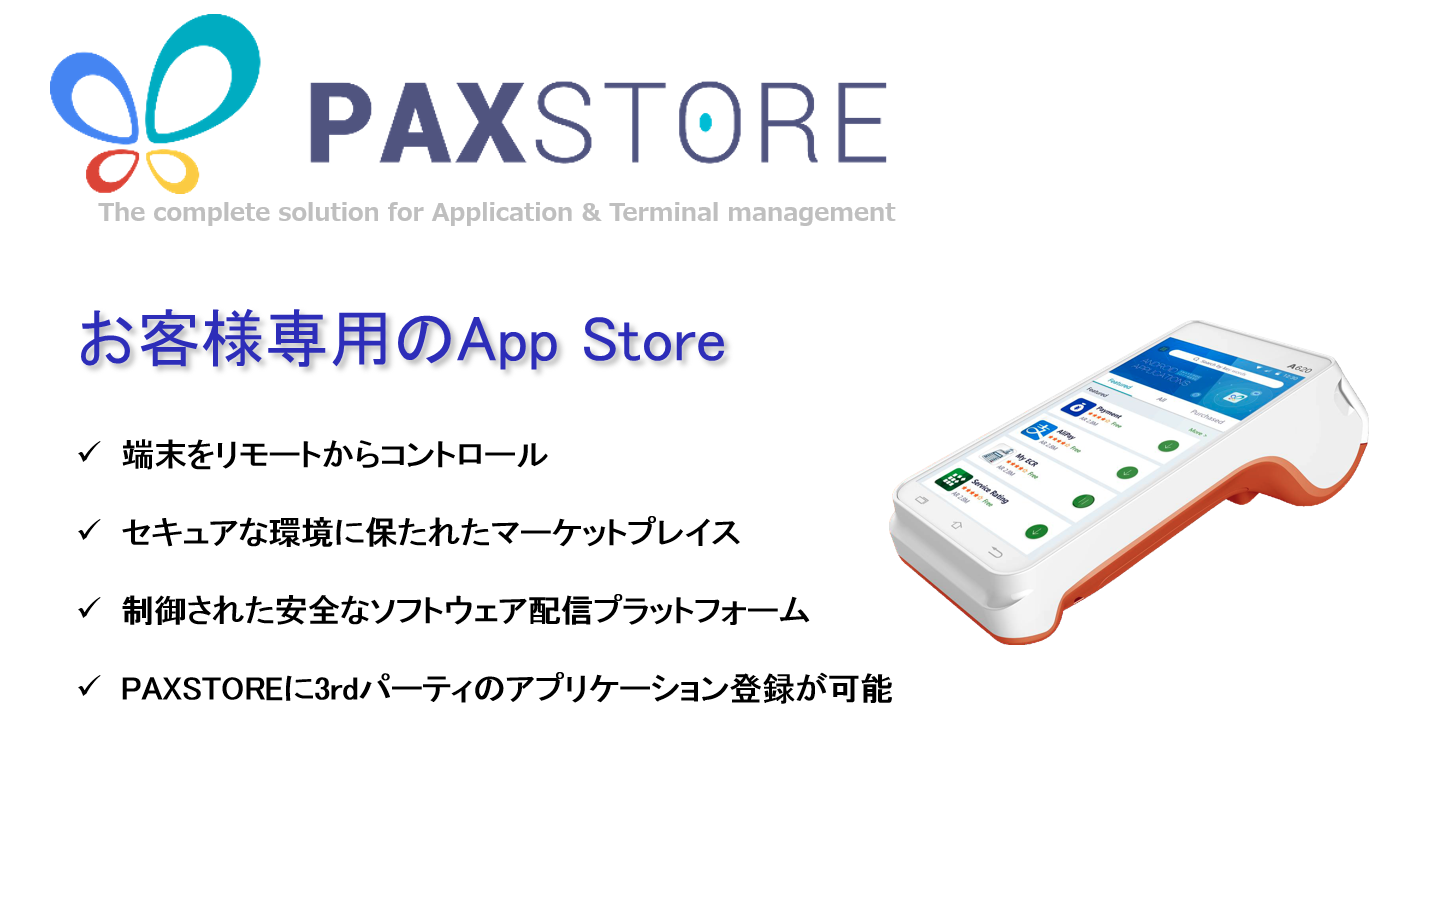 PAX A620 PAYサービス A6 リンク・プロセシング